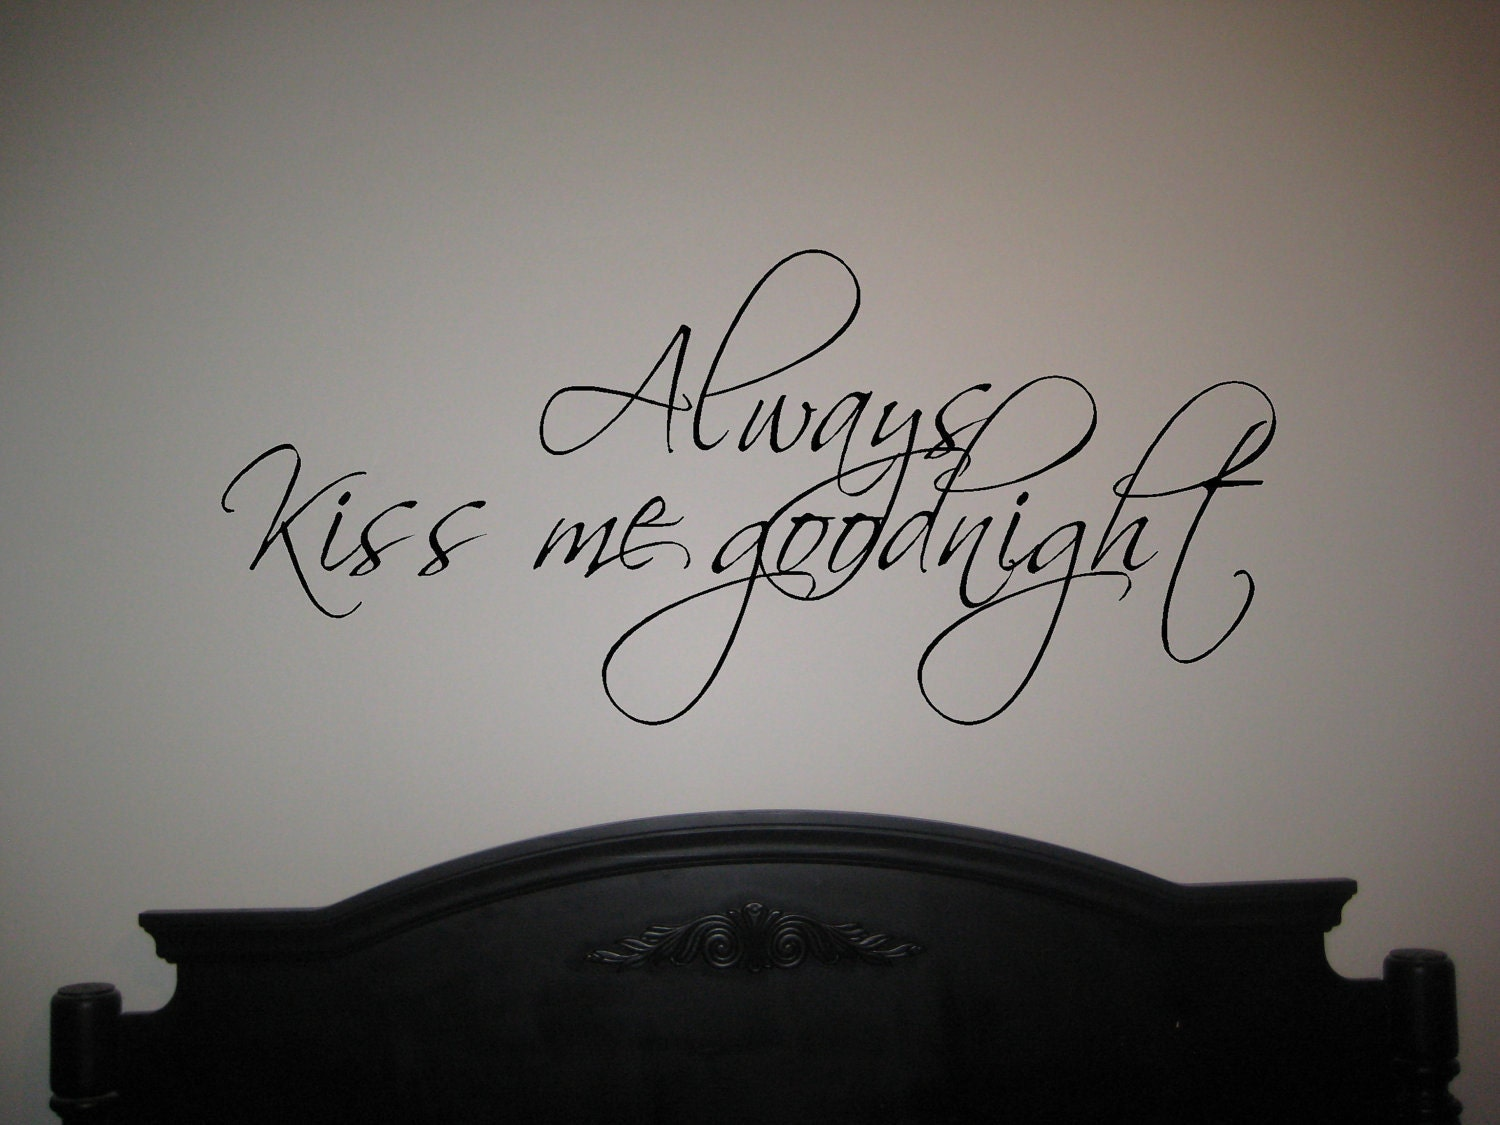 chandeliers pendant lights With always kiss me goodnight vinyl lettering